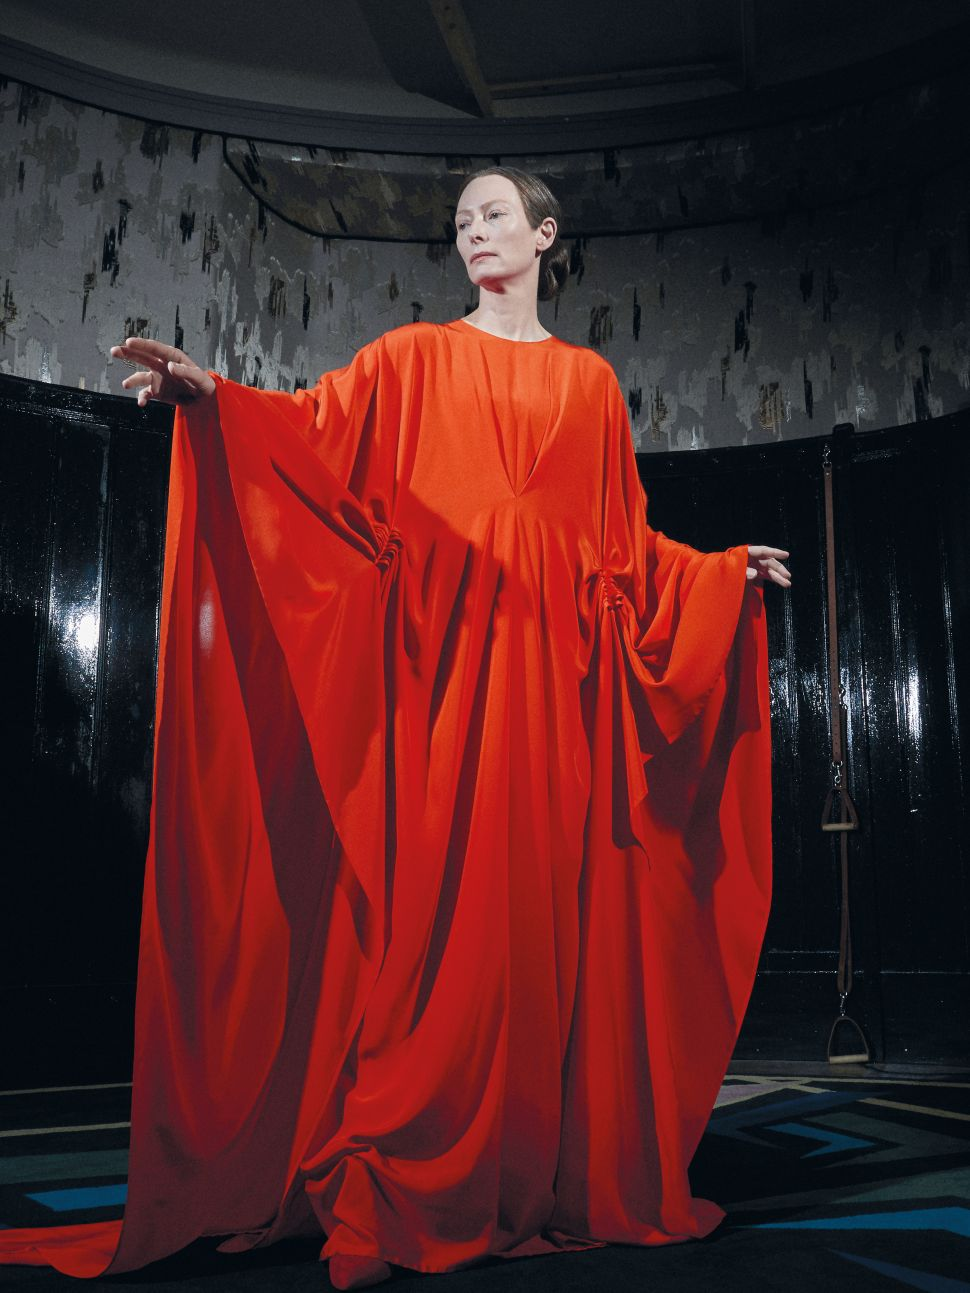 Horror Movies Like 'Suspiria' Have Been Ripping Off Artists for Years